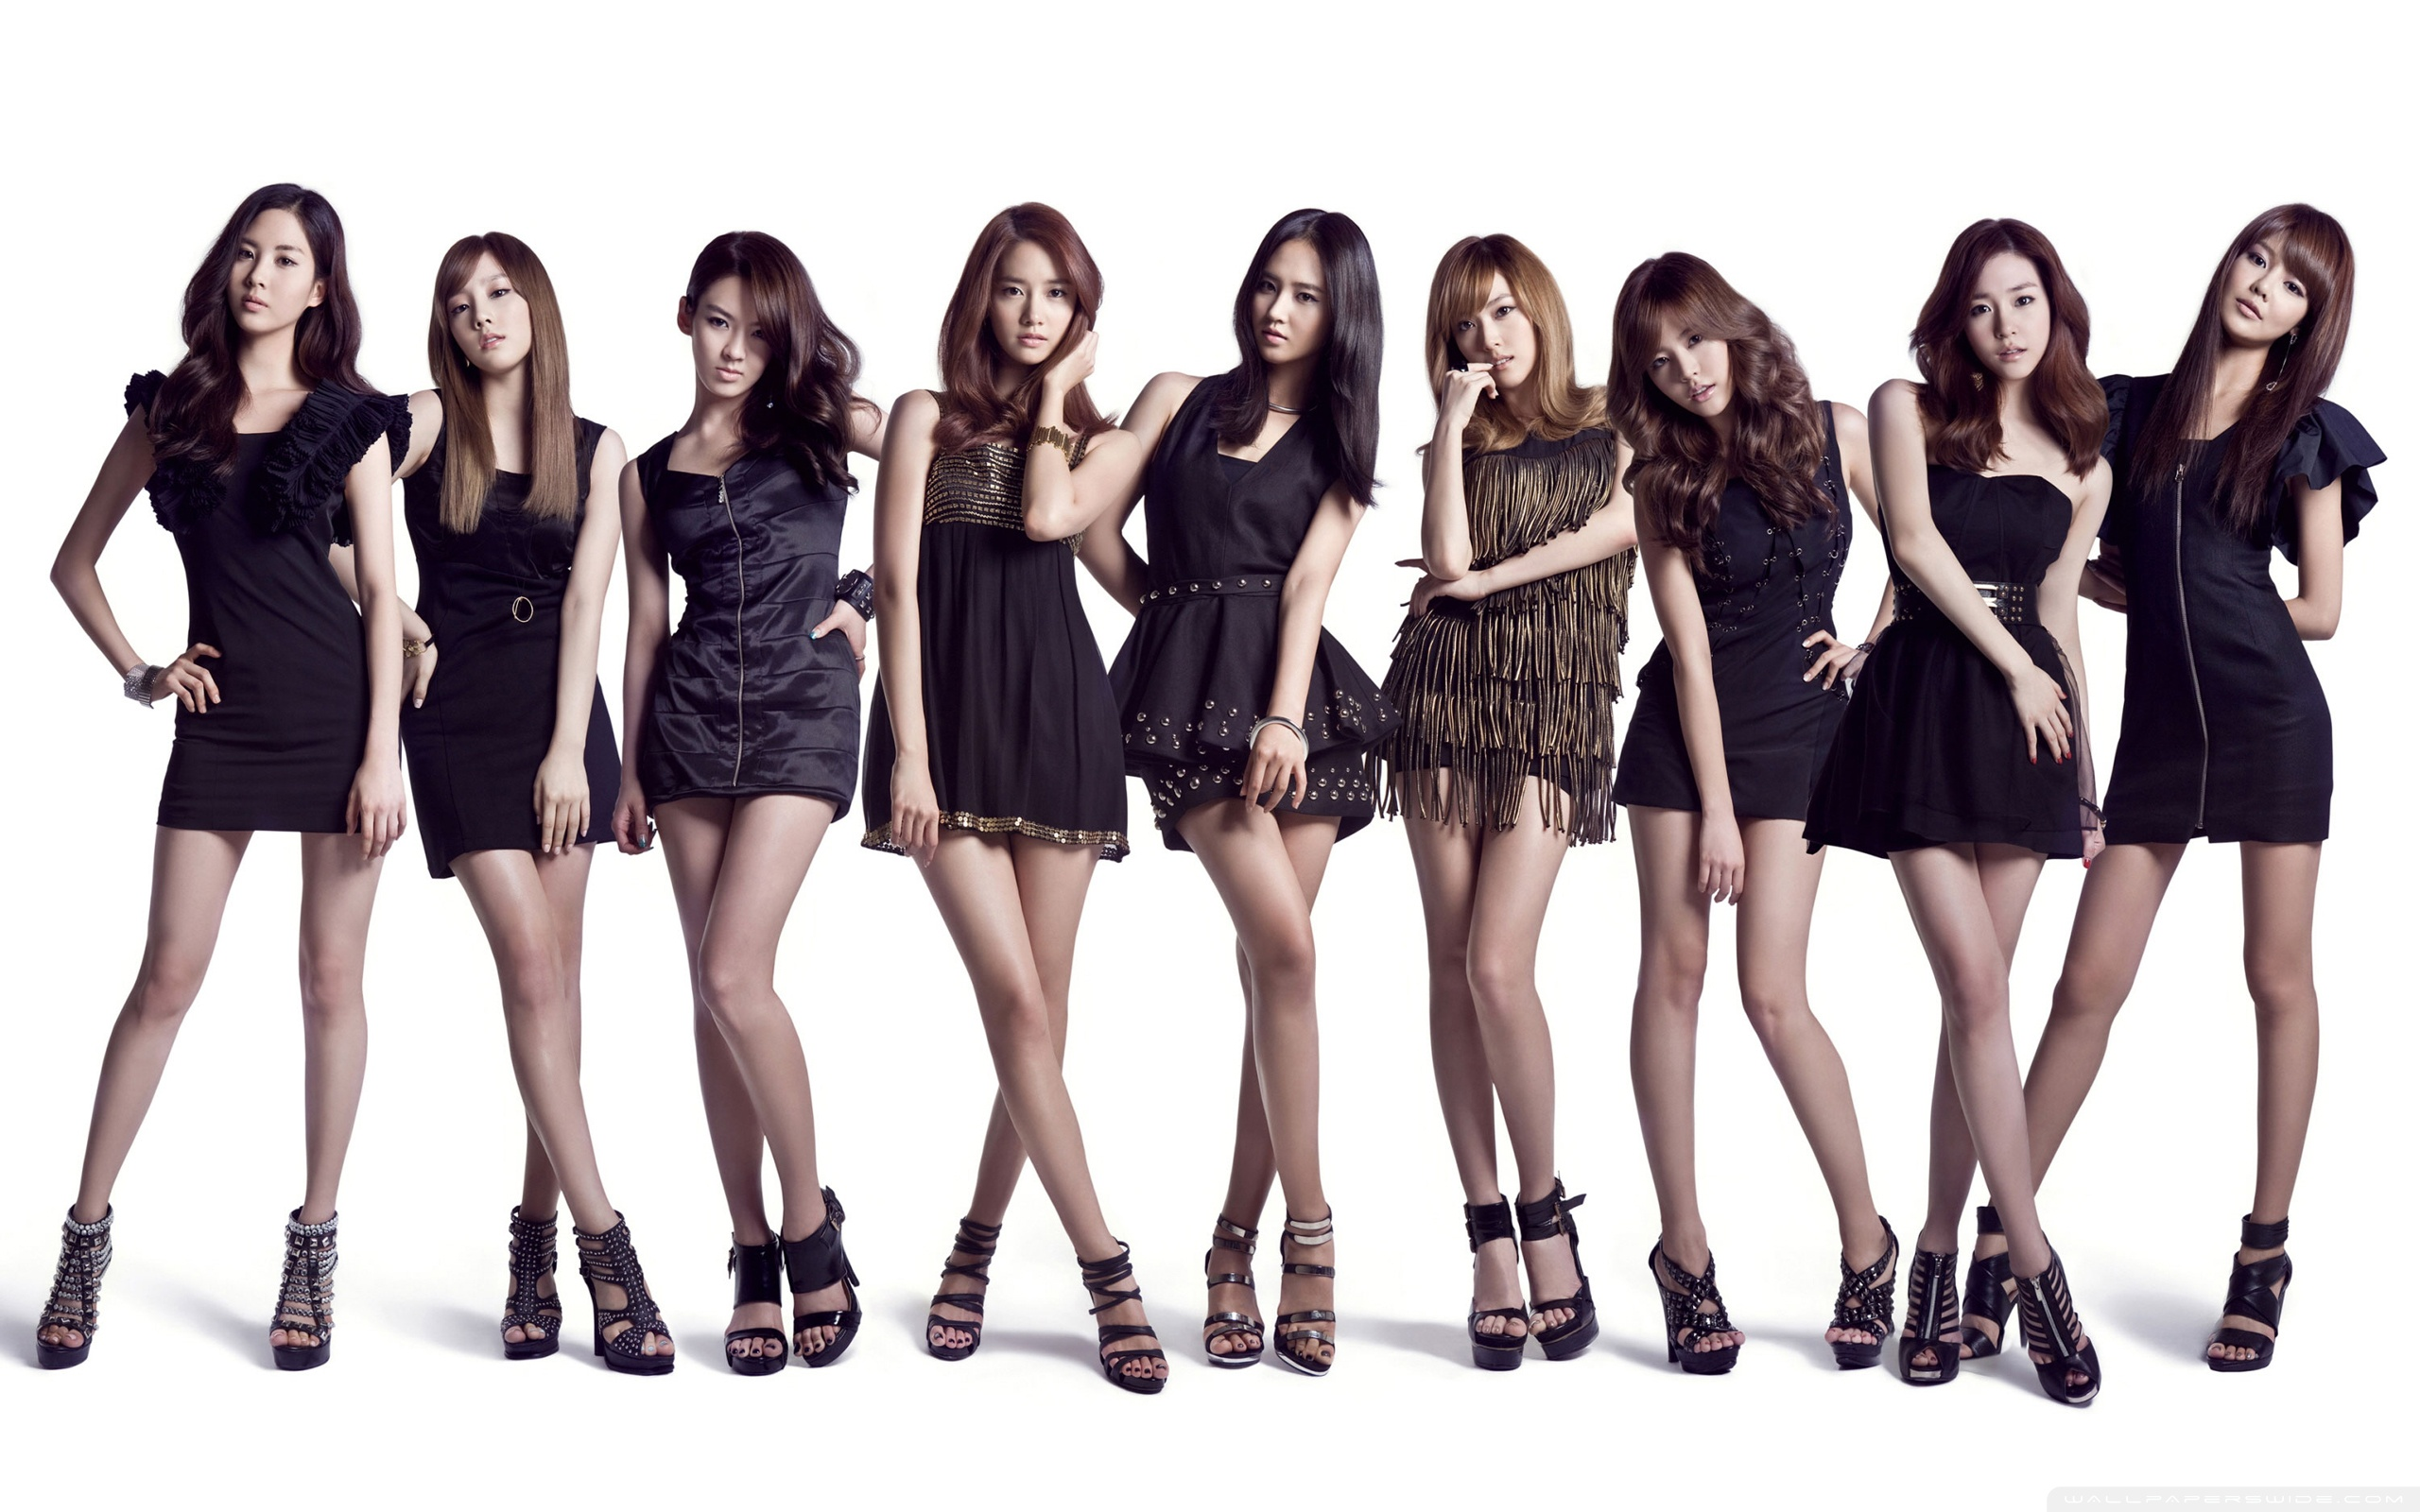 girls_generation-2560x1600